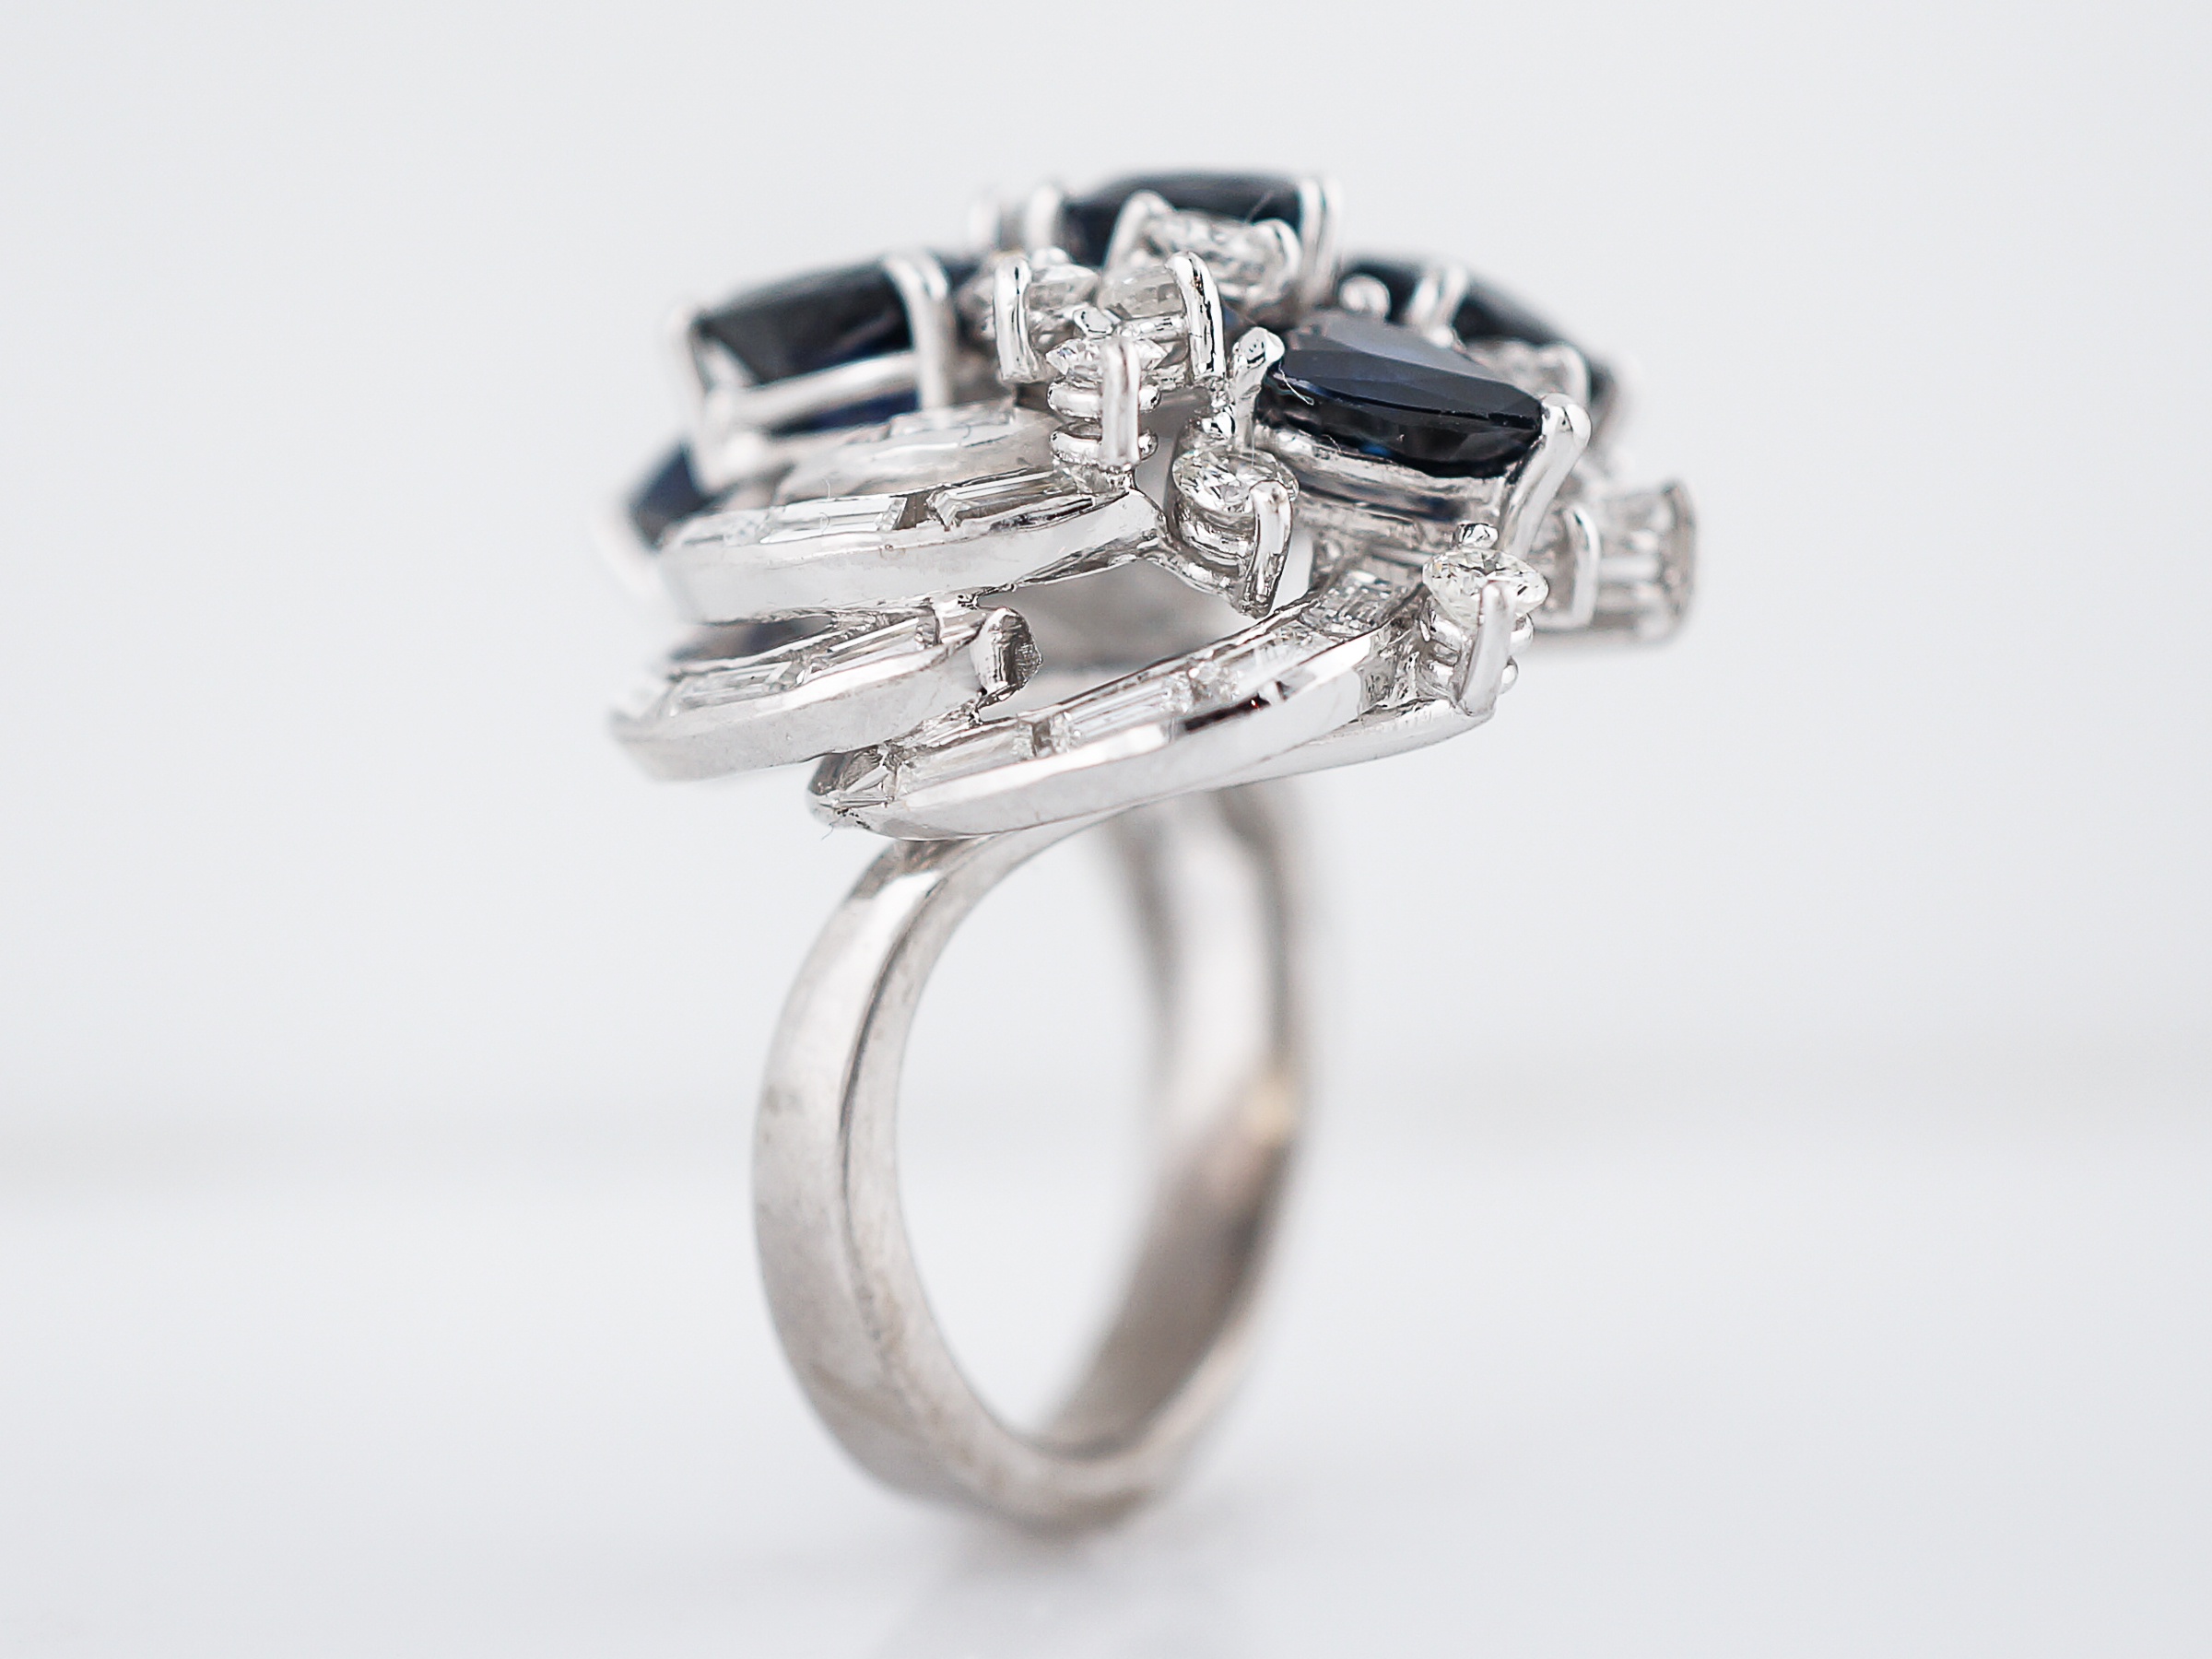 engagement and judith products crisscut diamond baguette ring sapphire platinum